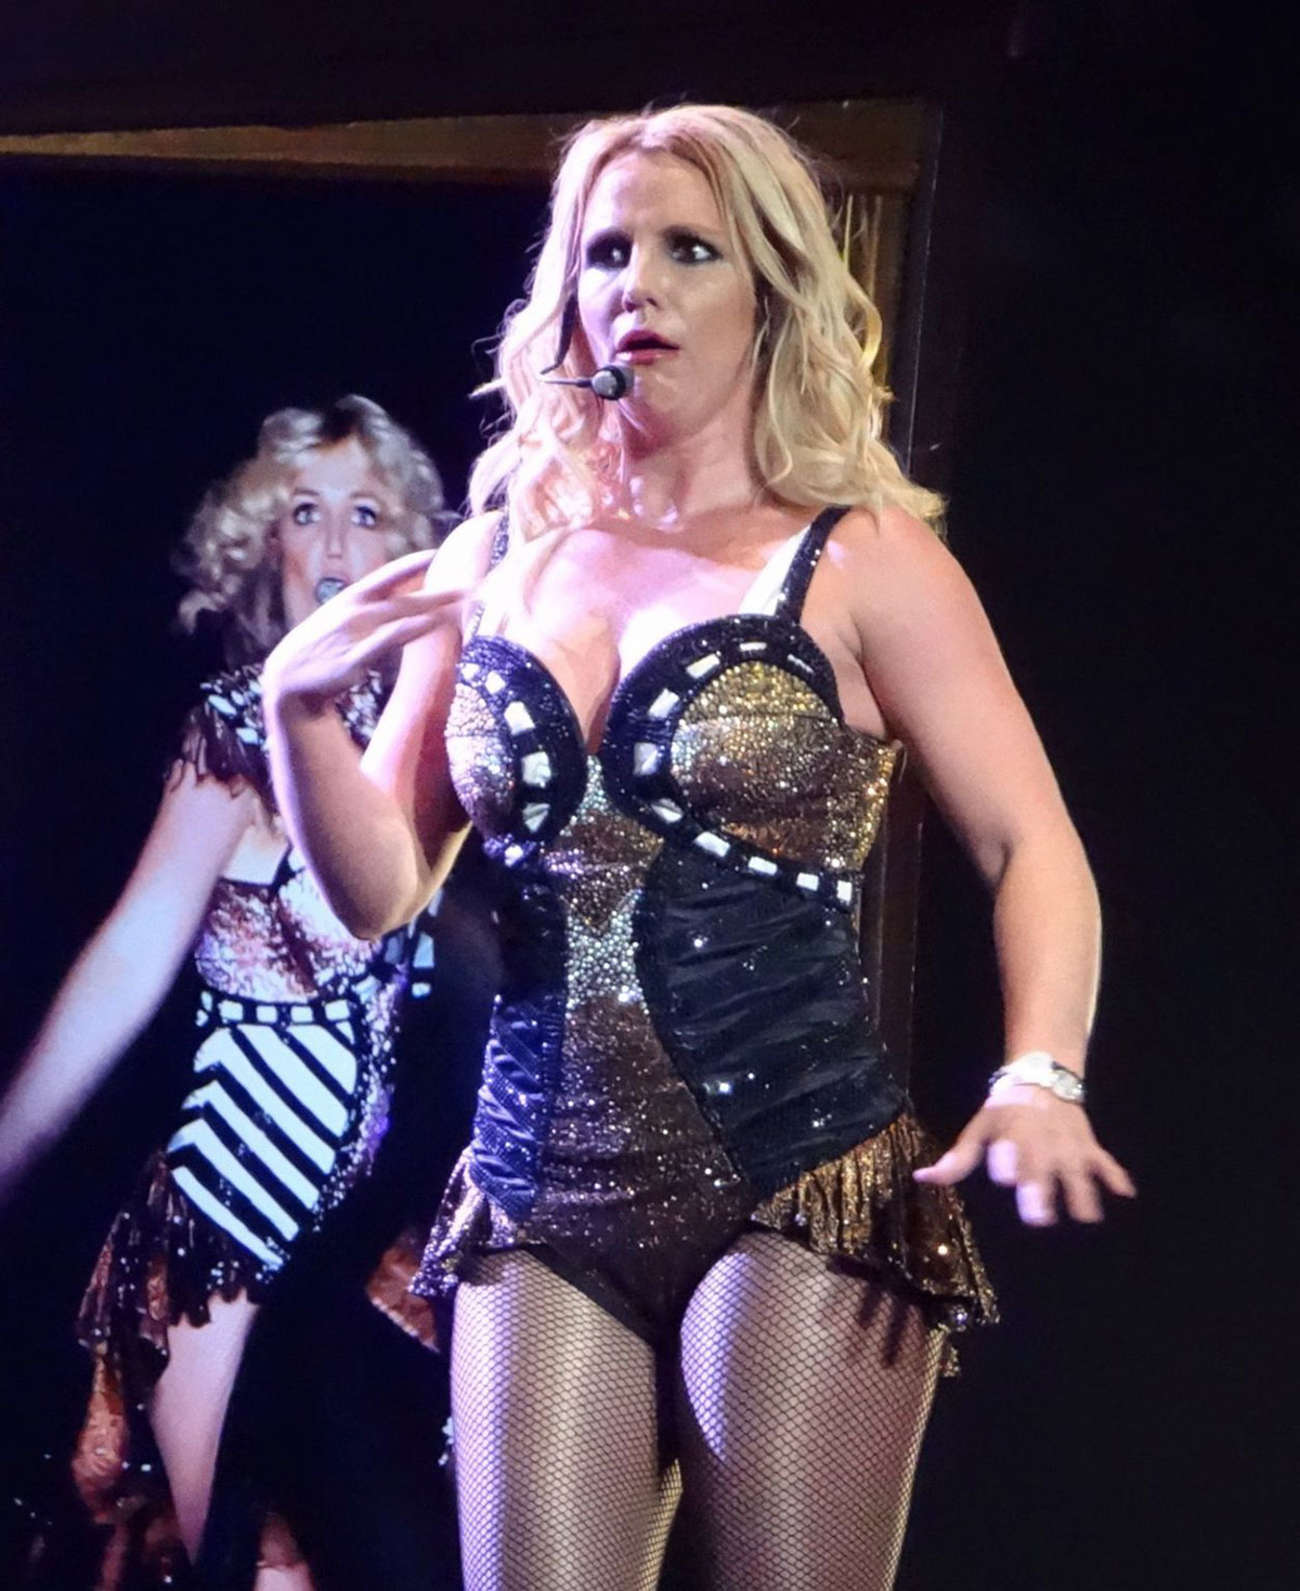 Britney-Spears-Piece-of-Me-Tour--11.jpg